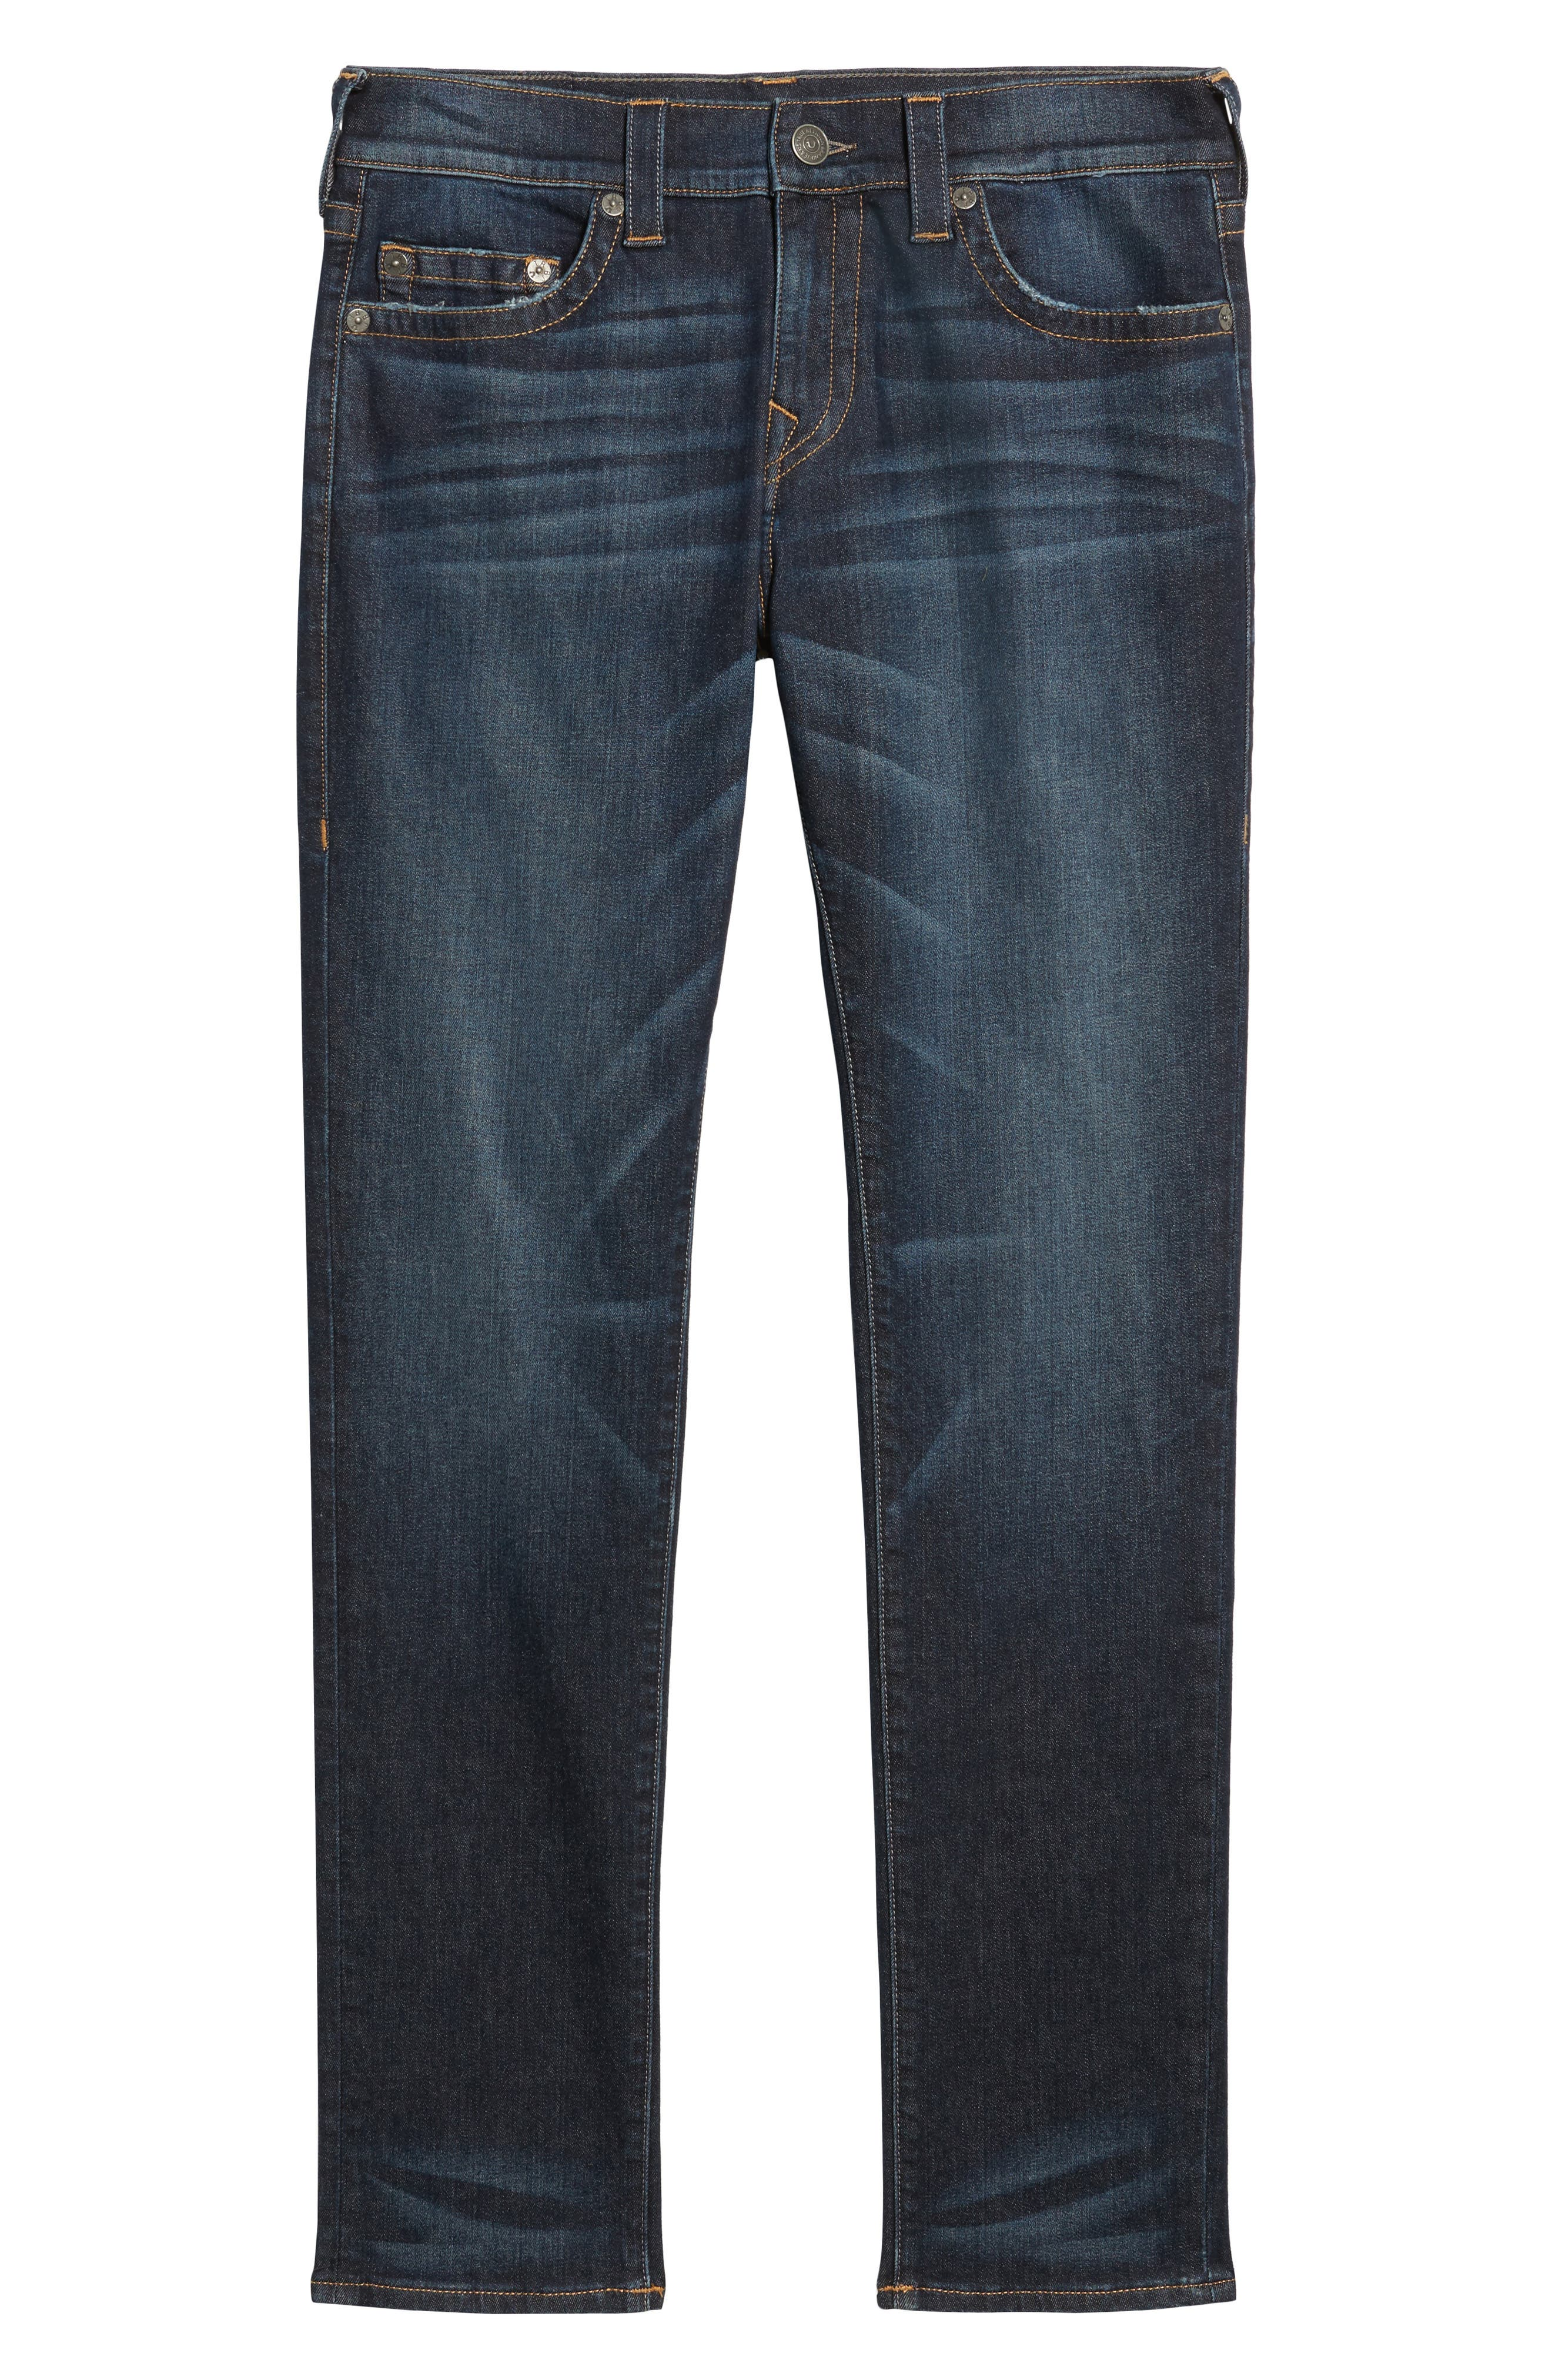 Rocco Skinny Fit Jeans,                             Alternate thumbnail 6, color,                             403